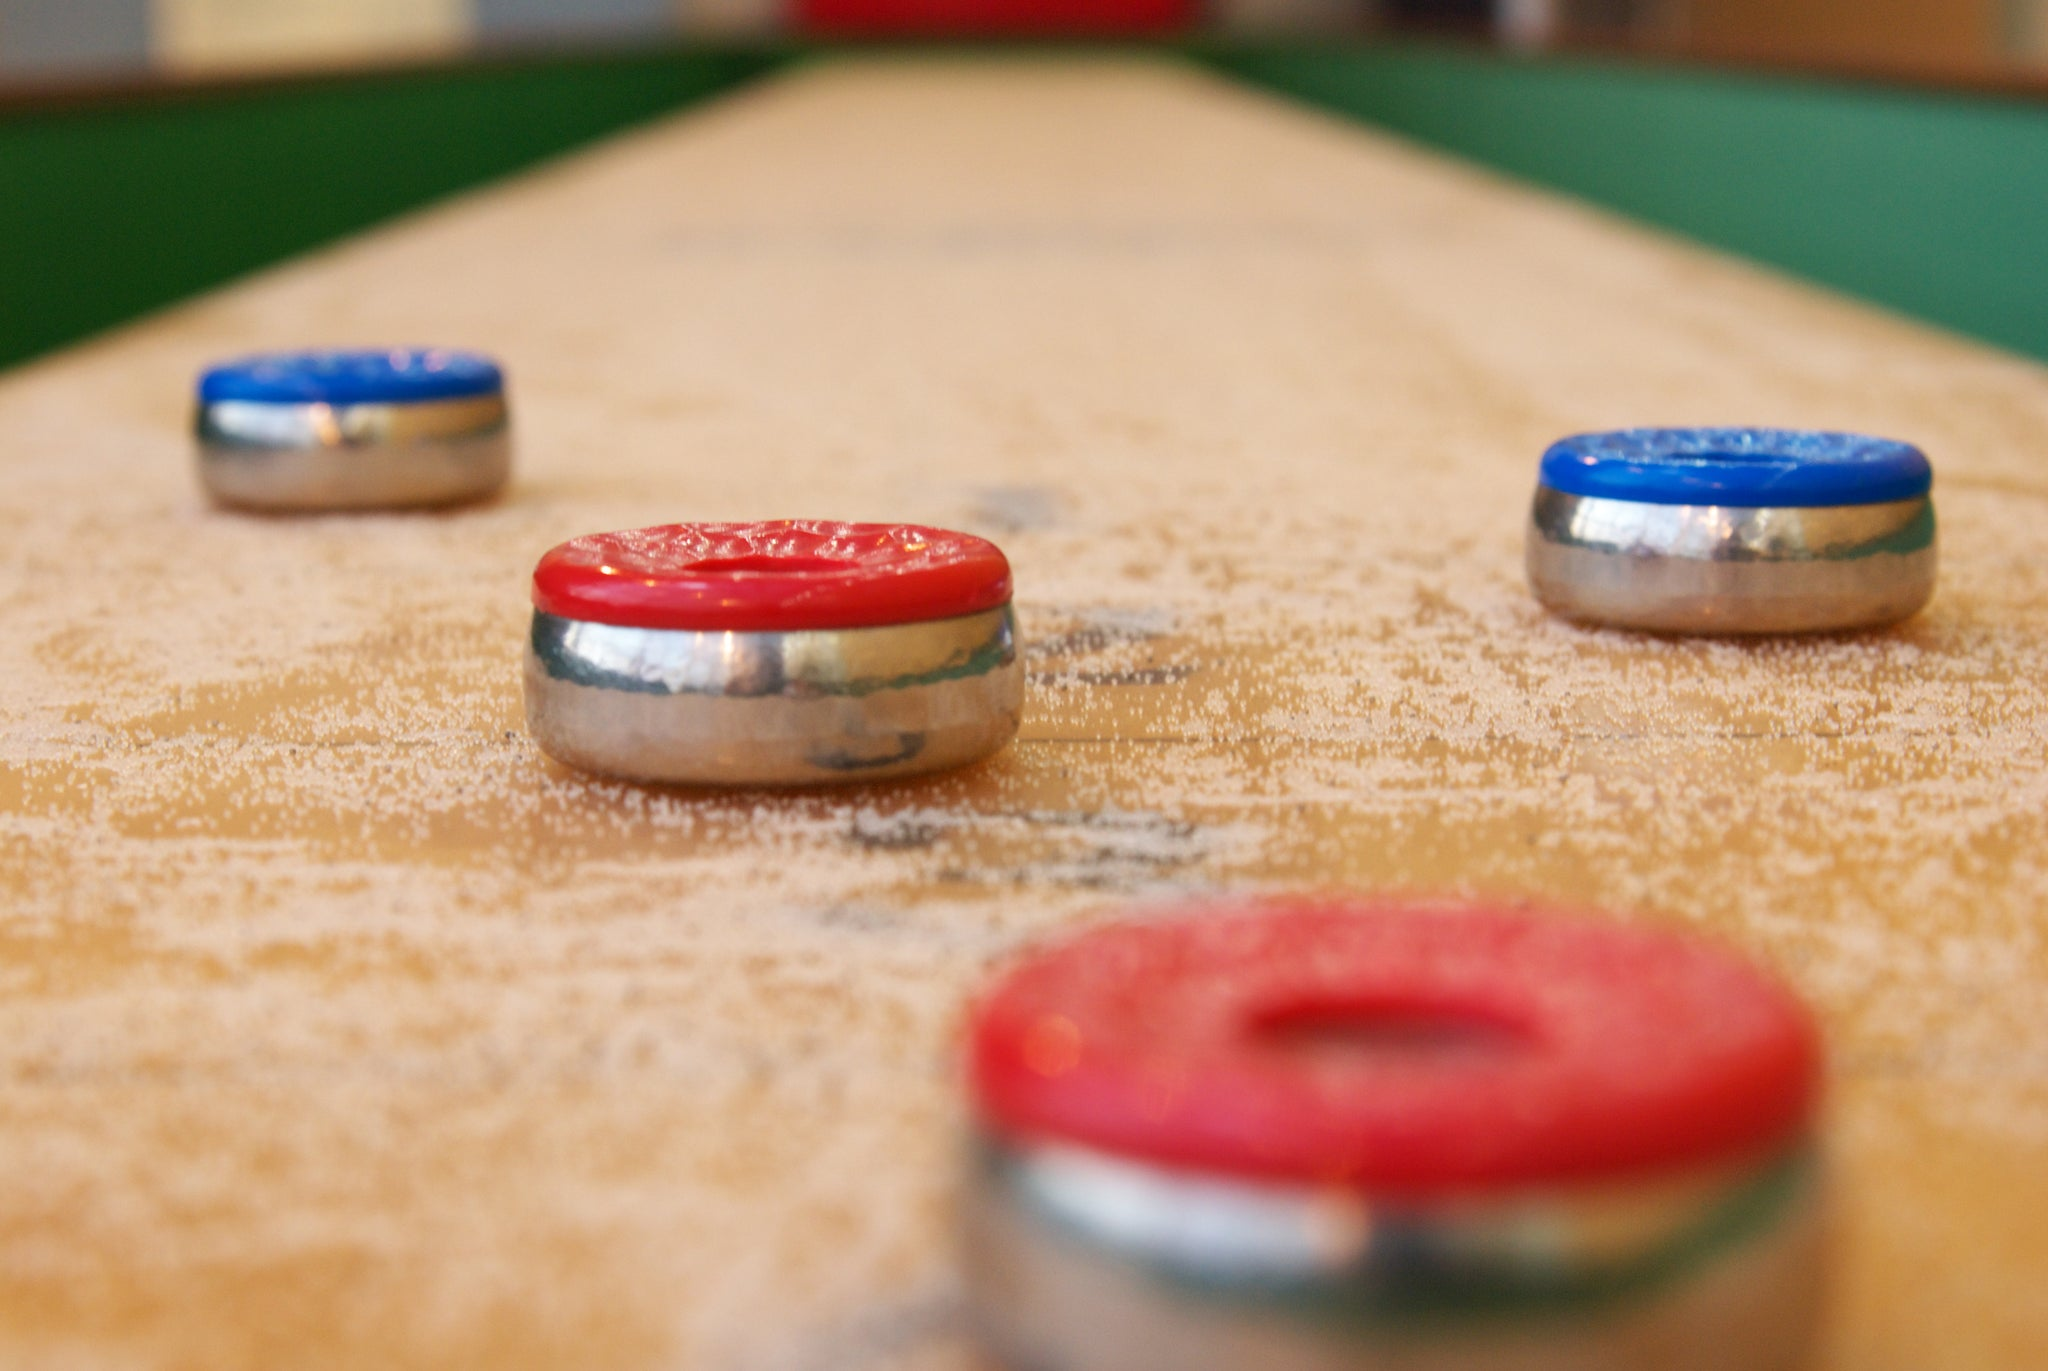 Evening Standard presents their pick of top Shuffleboard hotspots